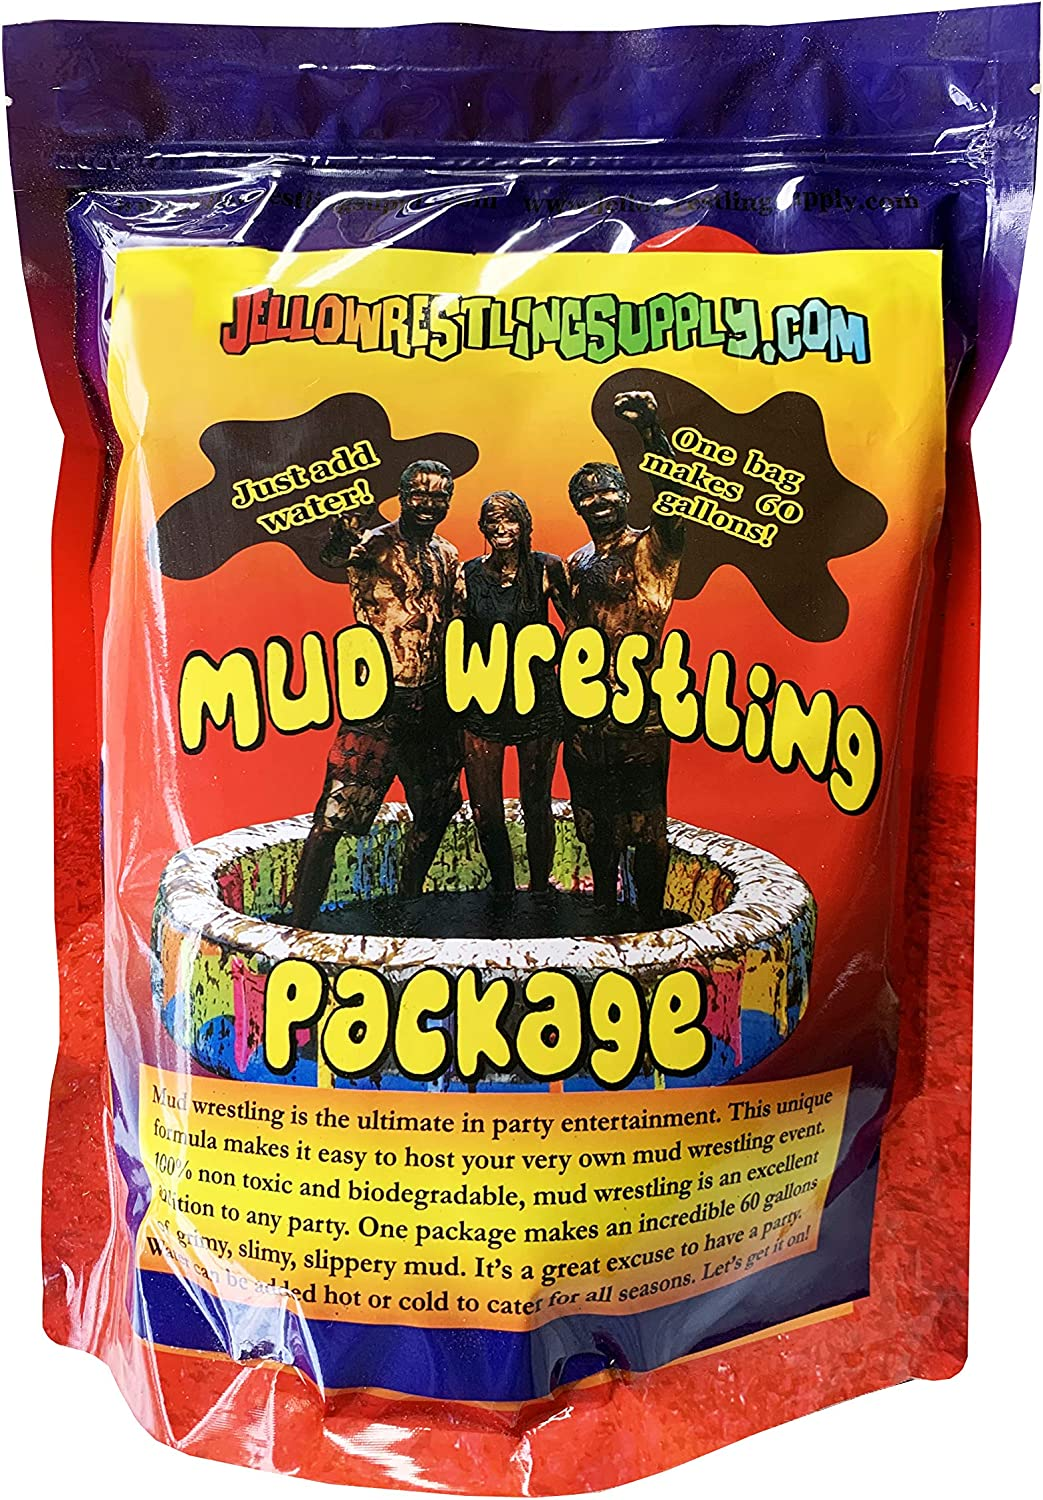 Instant Mud Wrestling Mix. Makes 60 Gal Just Add Water. Chocolate Pudding or Oil Wrestling Kit non edible. Add package to pool or pit. Slimy slippery fake sludge. For mud runs messy party games fun